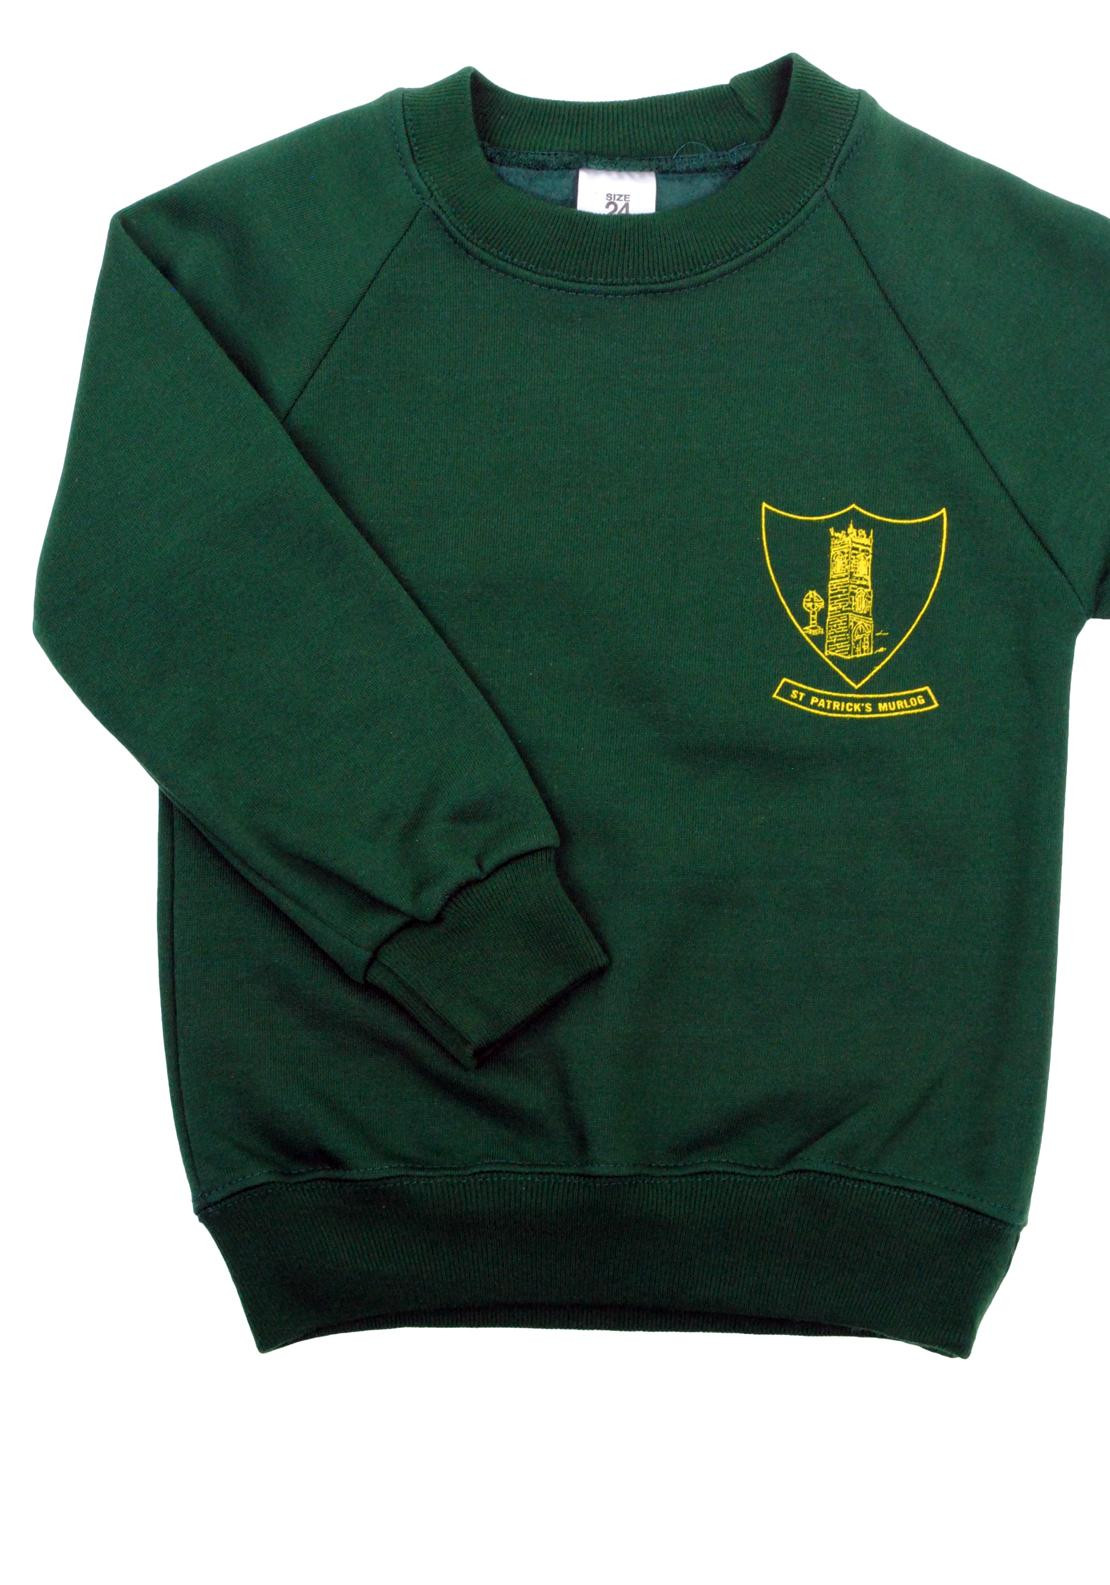 Find great deals on eBay for green jumper. Shop with confidence.